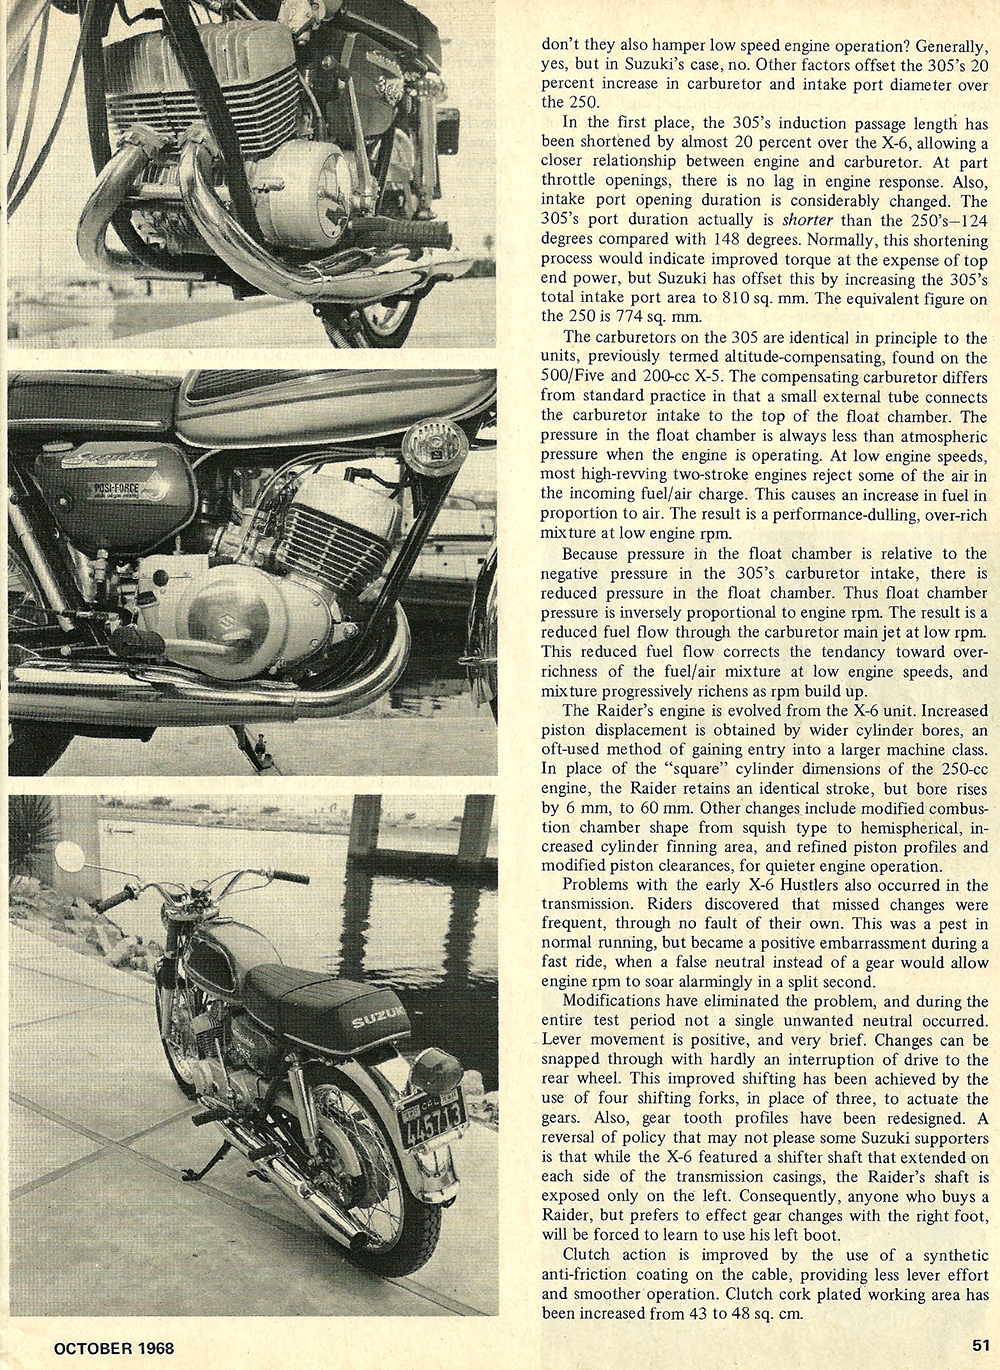 1968 Suzuki 305 Raider road test 02.jpg